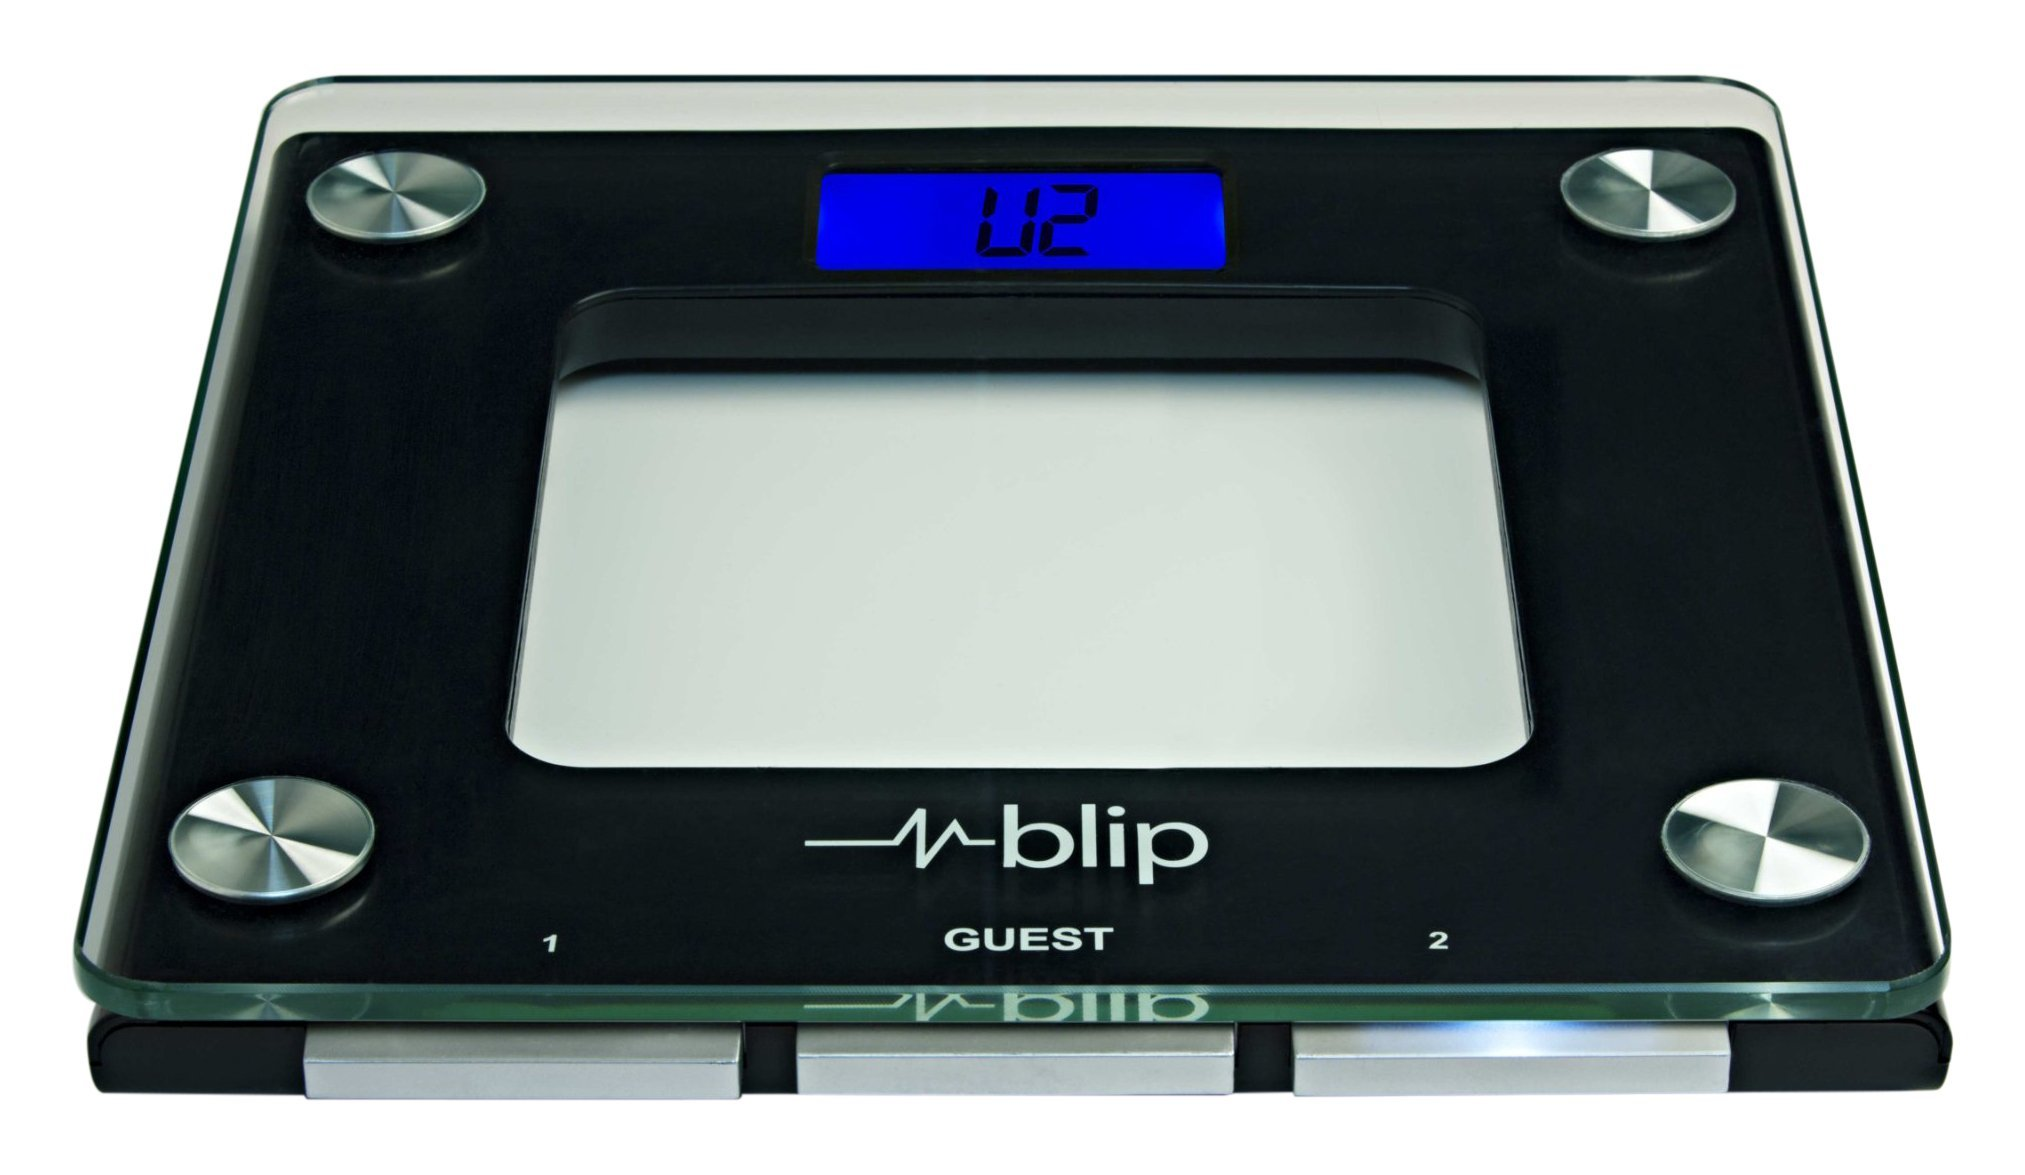 Blipcare Wi-Fi Scale, Track Weight, BMI and Balance Score, Audible Reminders, 10 users